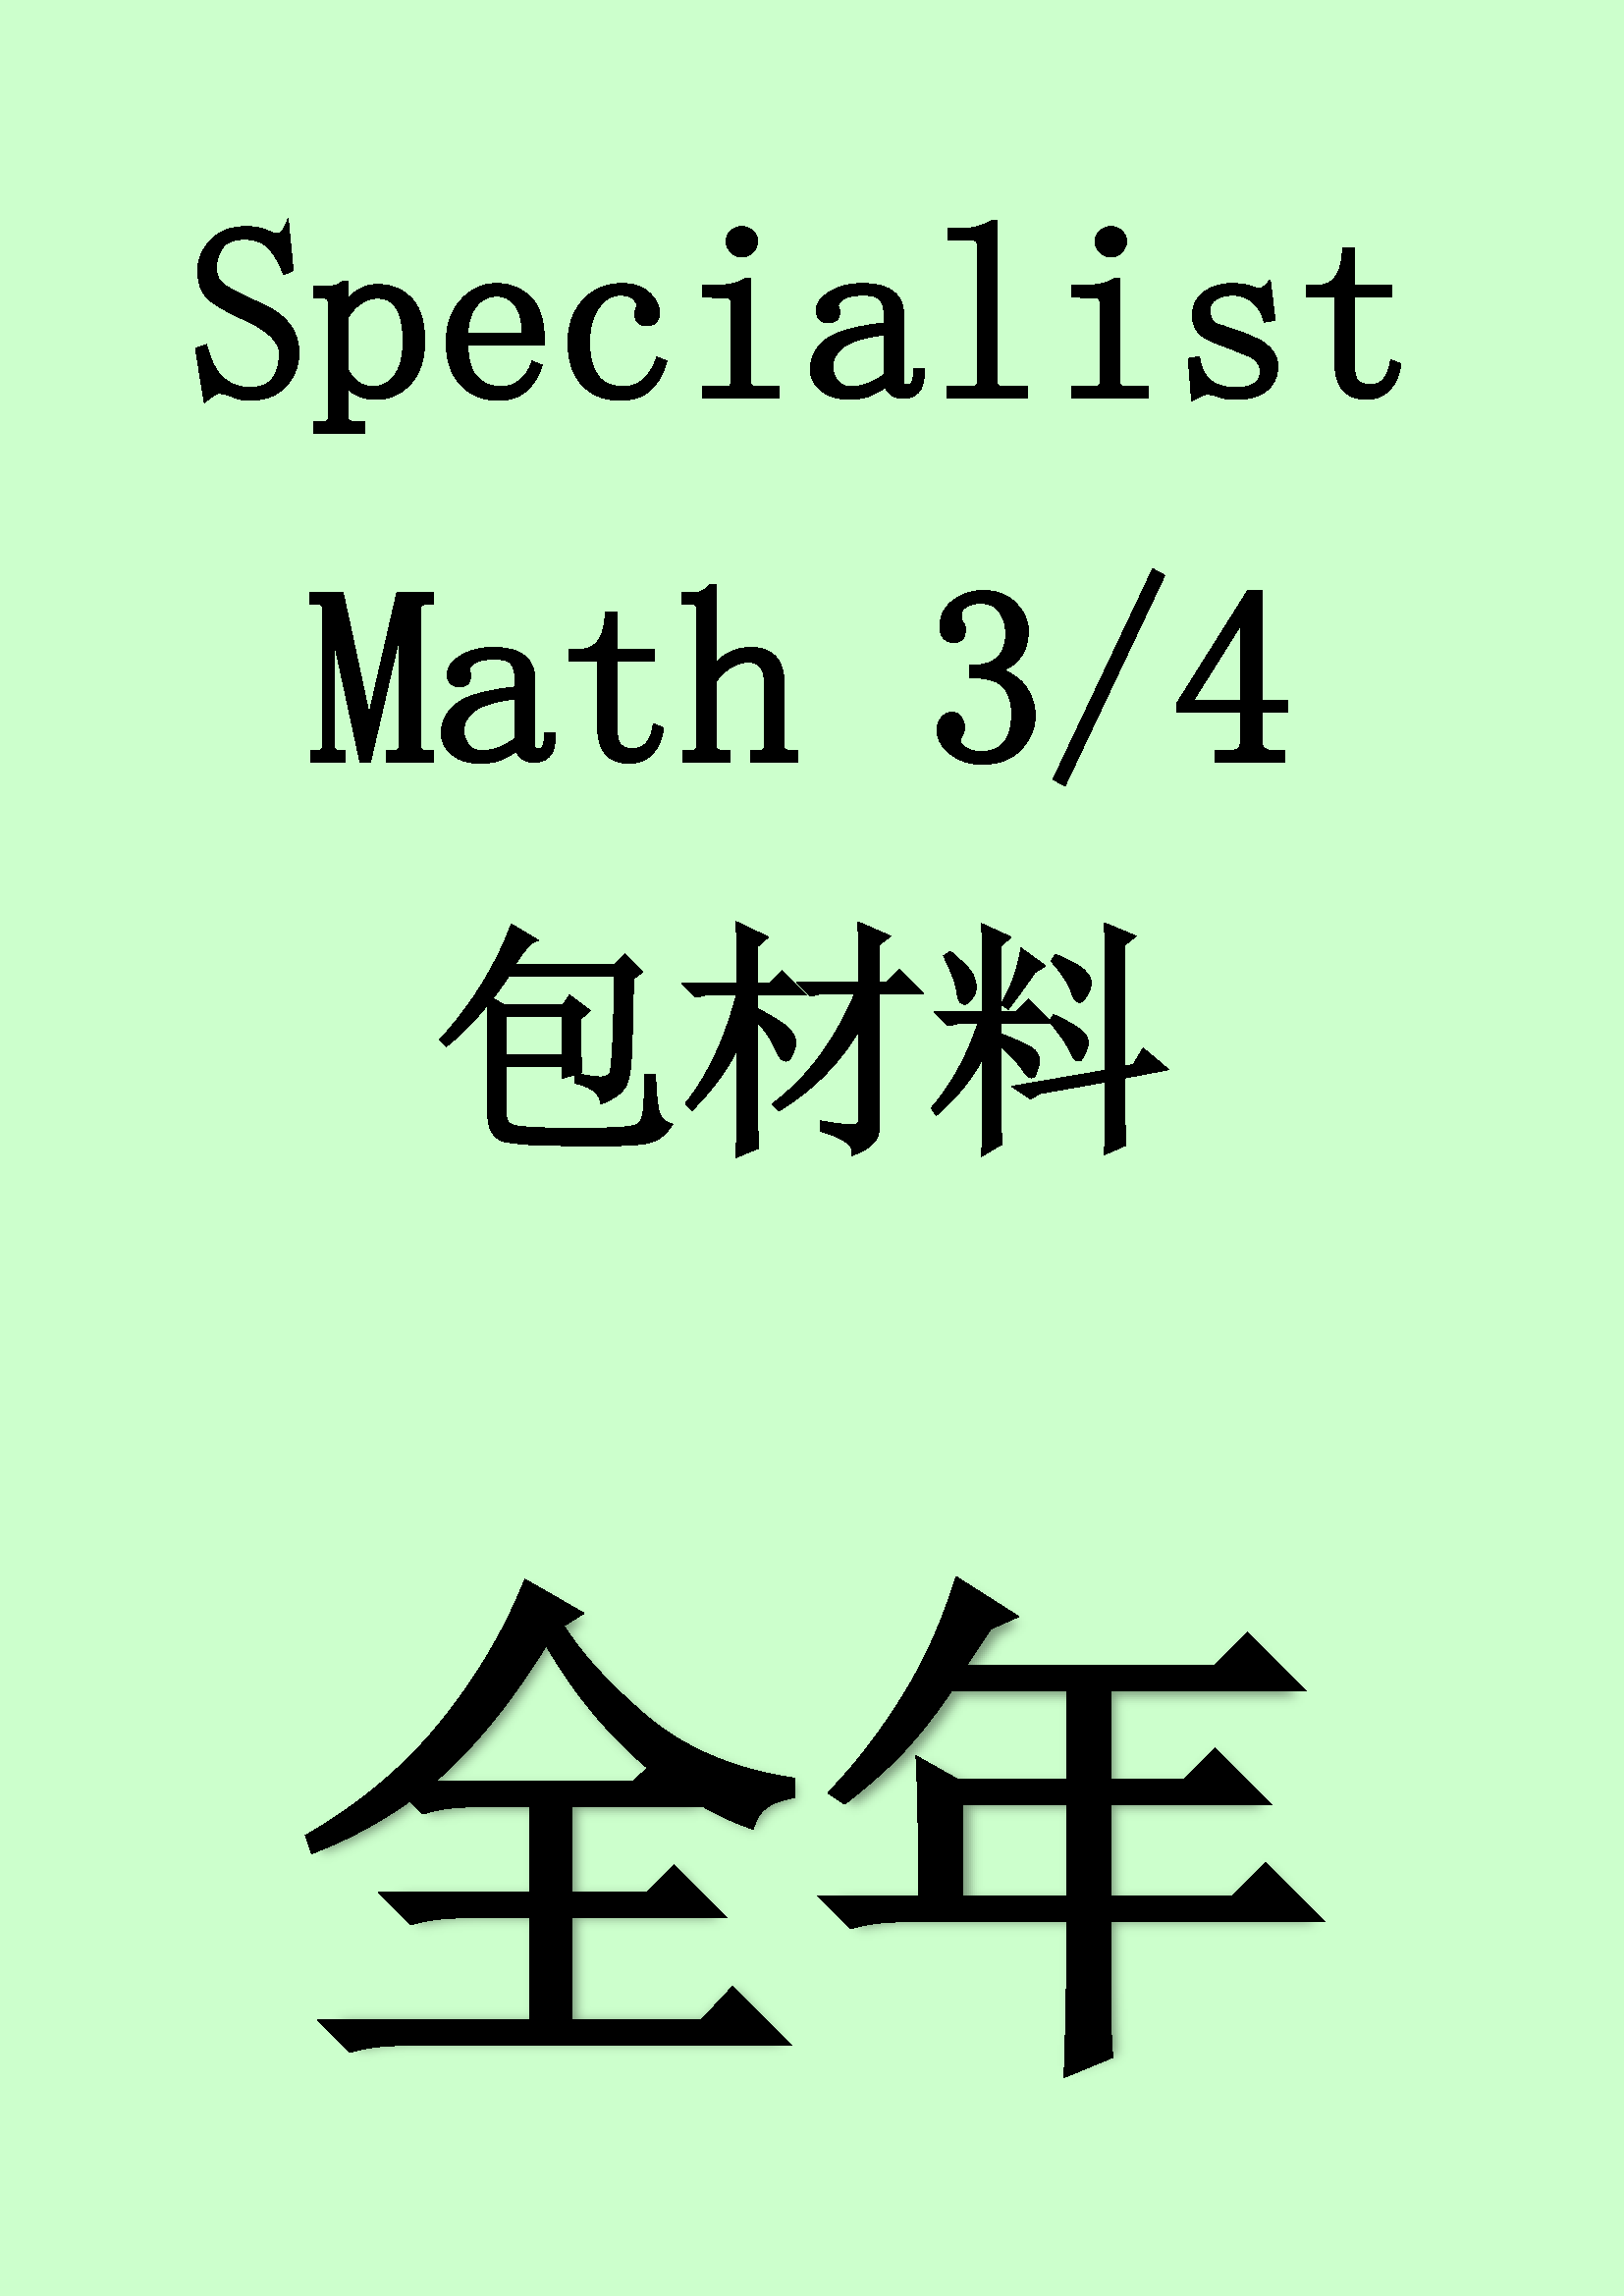 Specialist Math Unit 3/4 Full year - Sat Afternoon